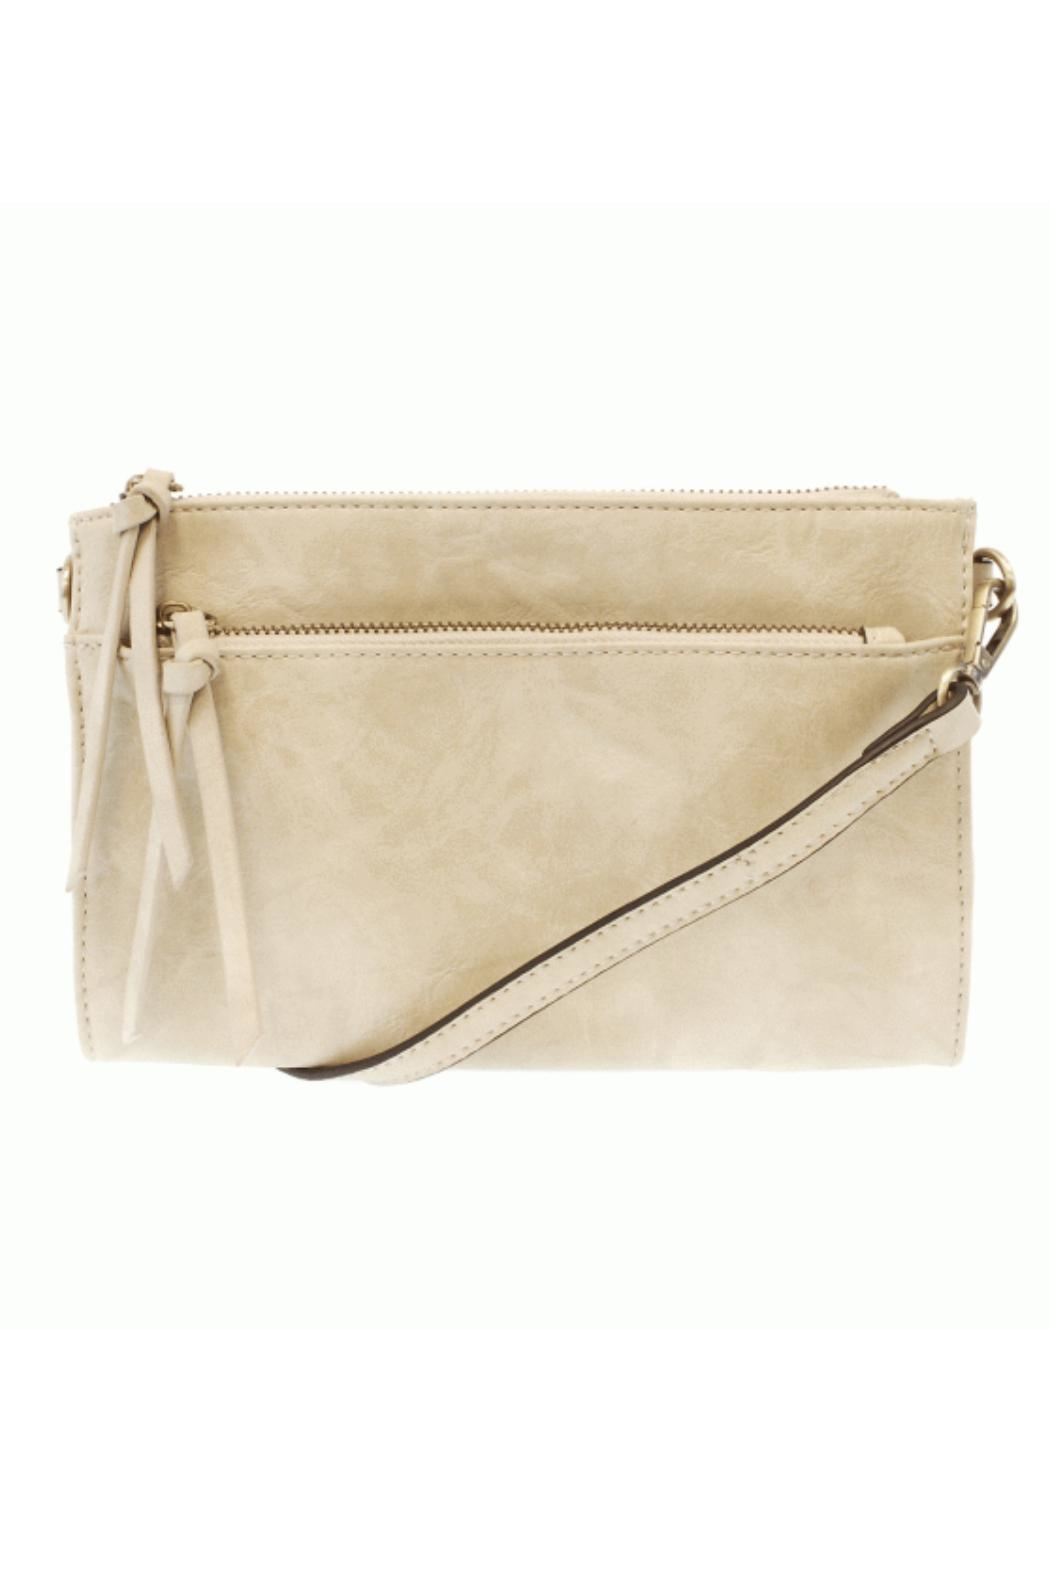 cf2a09c44c Joy Susan Cece Vintage Crossbody from Providence by Queen of Hearts ...